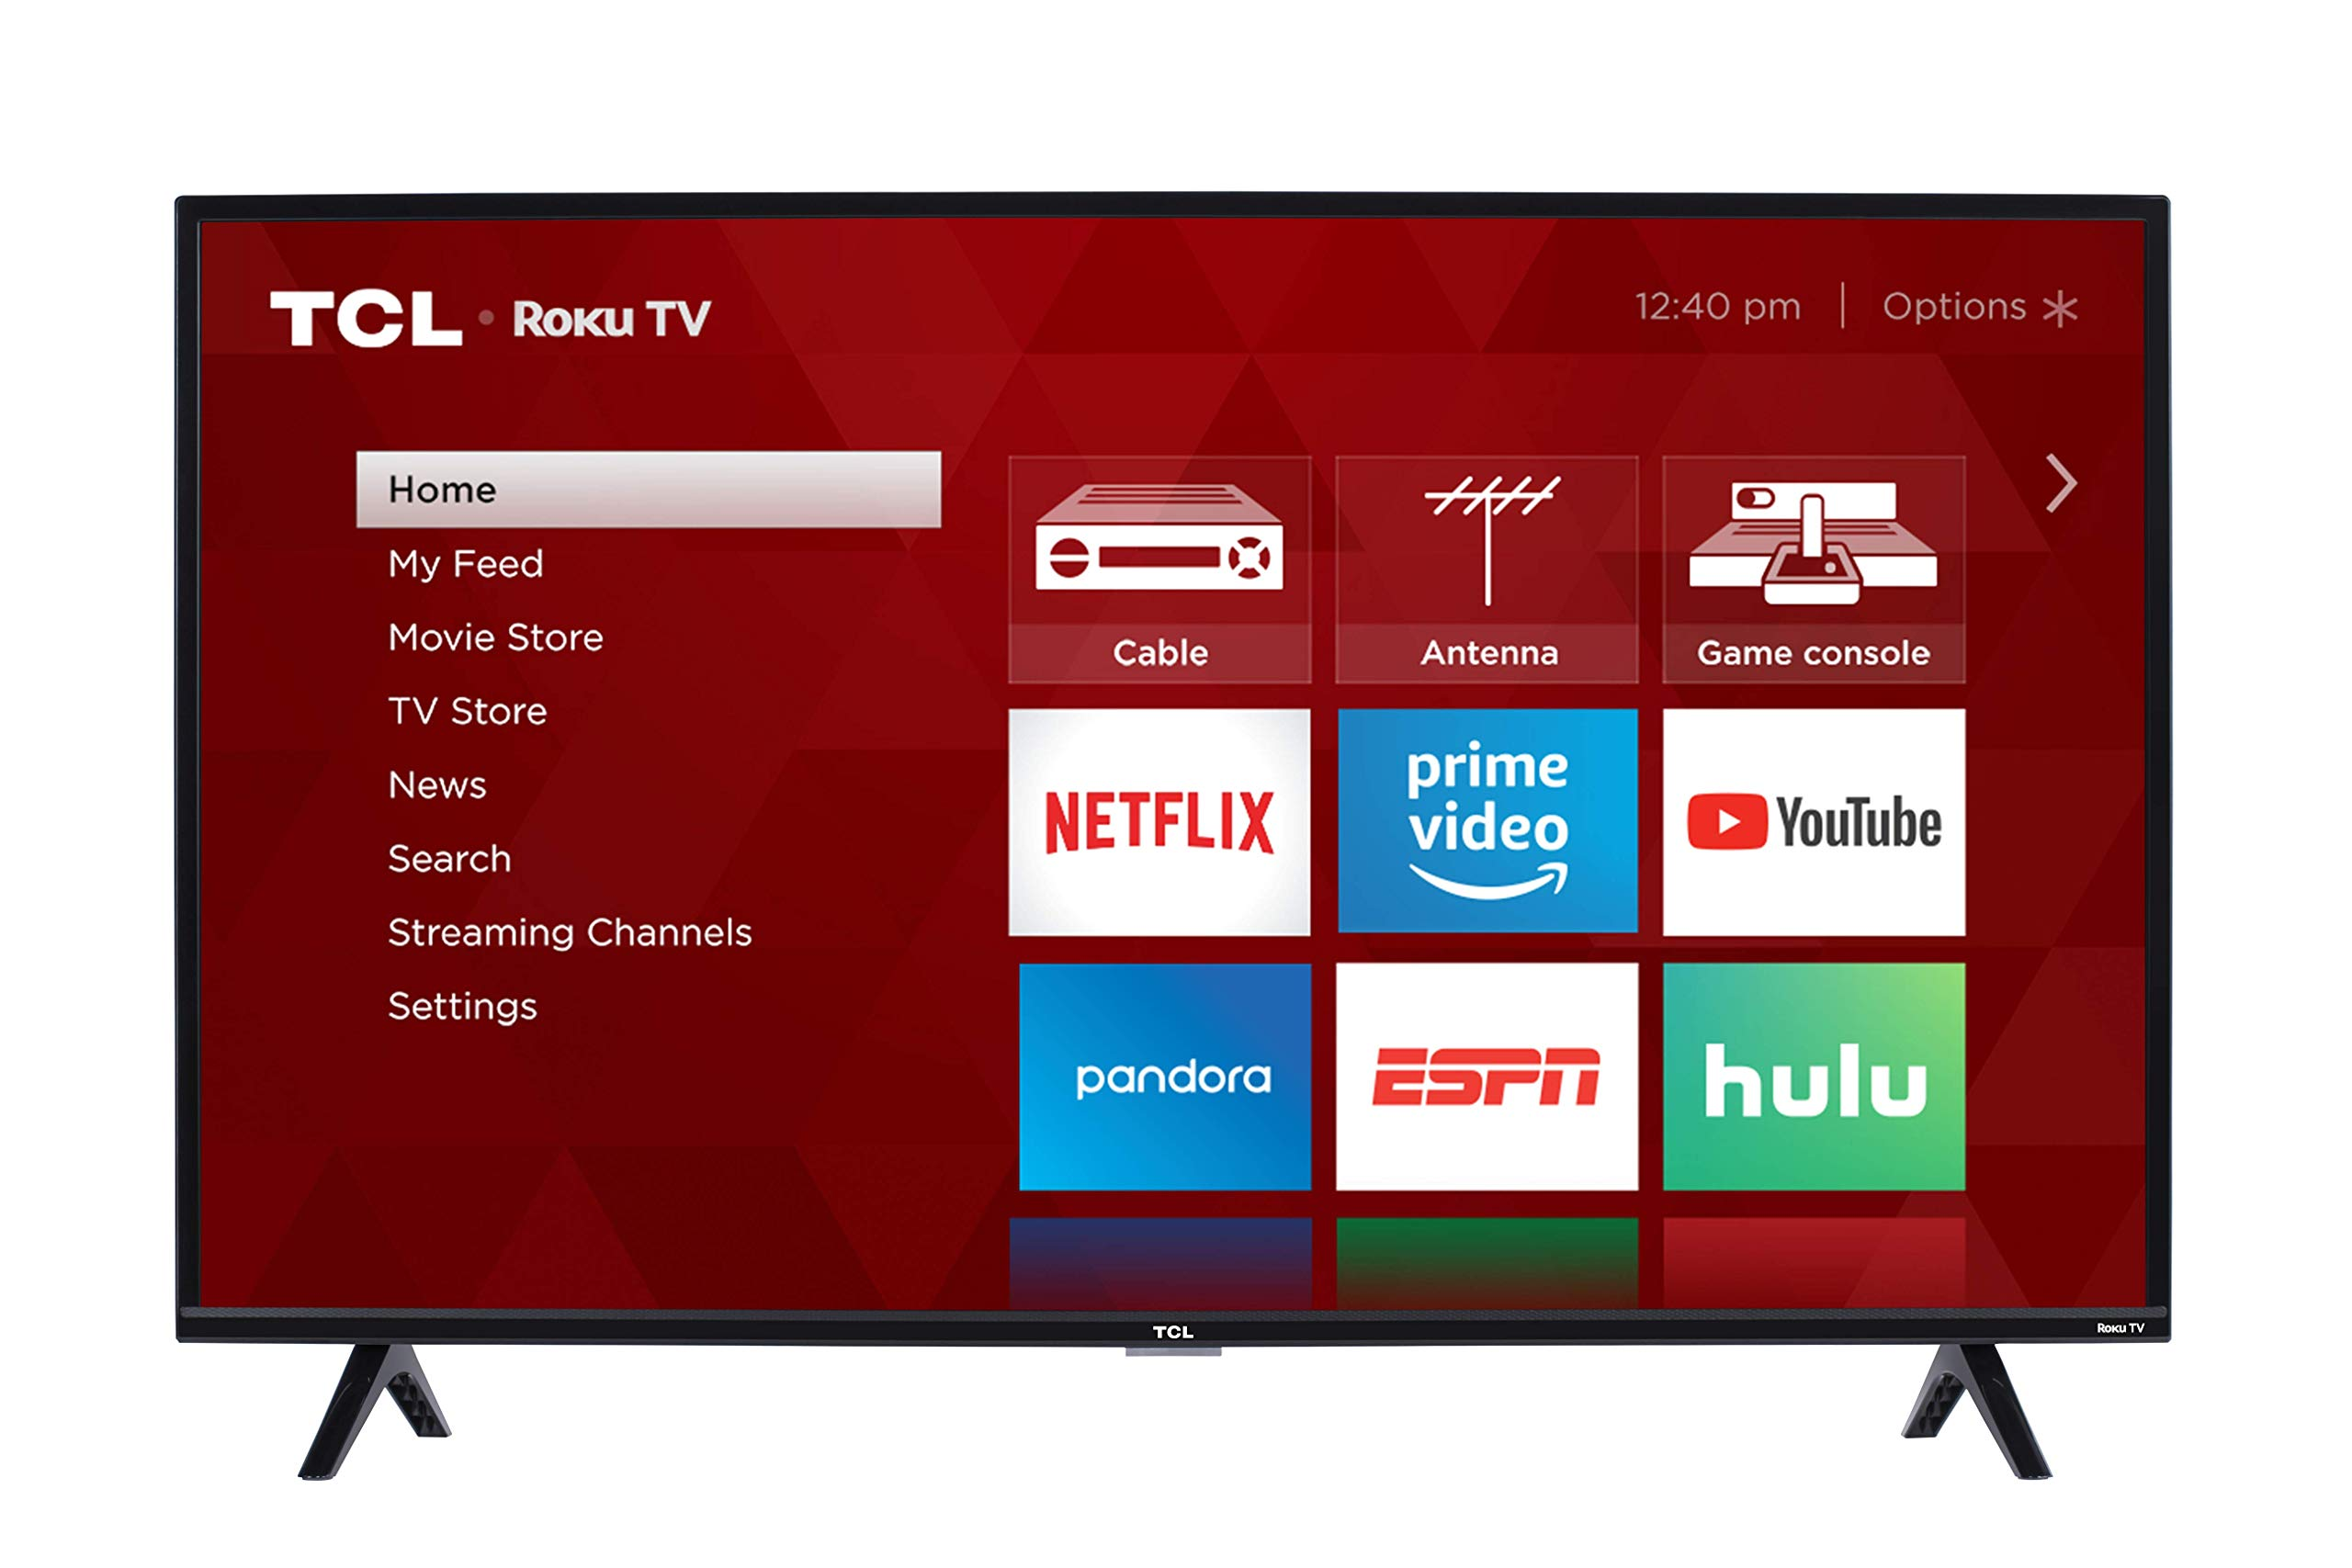 TCL 40-inch 1080p Smart LED Roku TV - 40S325, 2019 Model